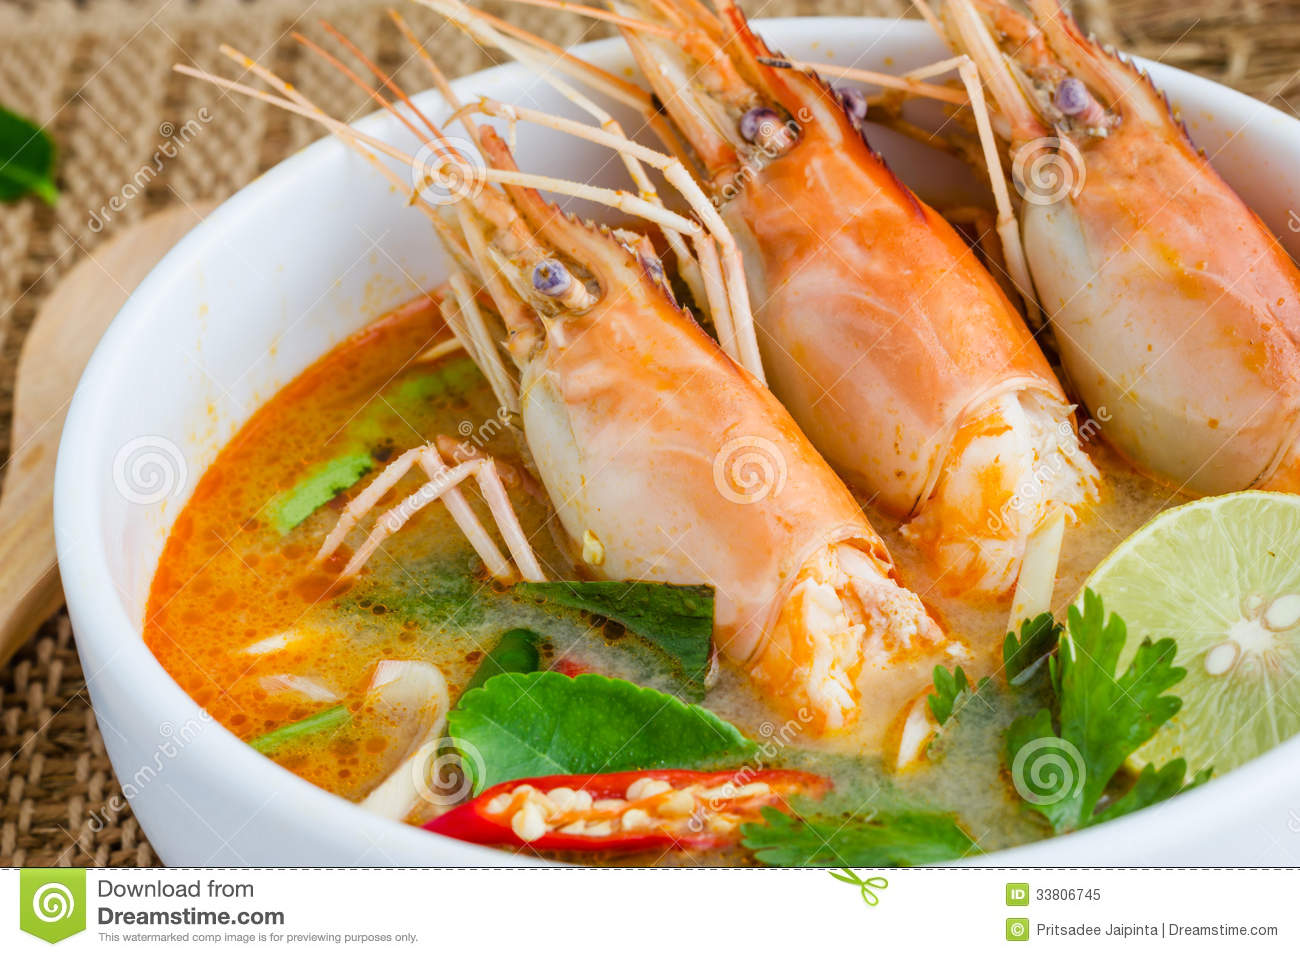 Tom yum kung royalty free stock photo image 33806745 for About thai cuisine